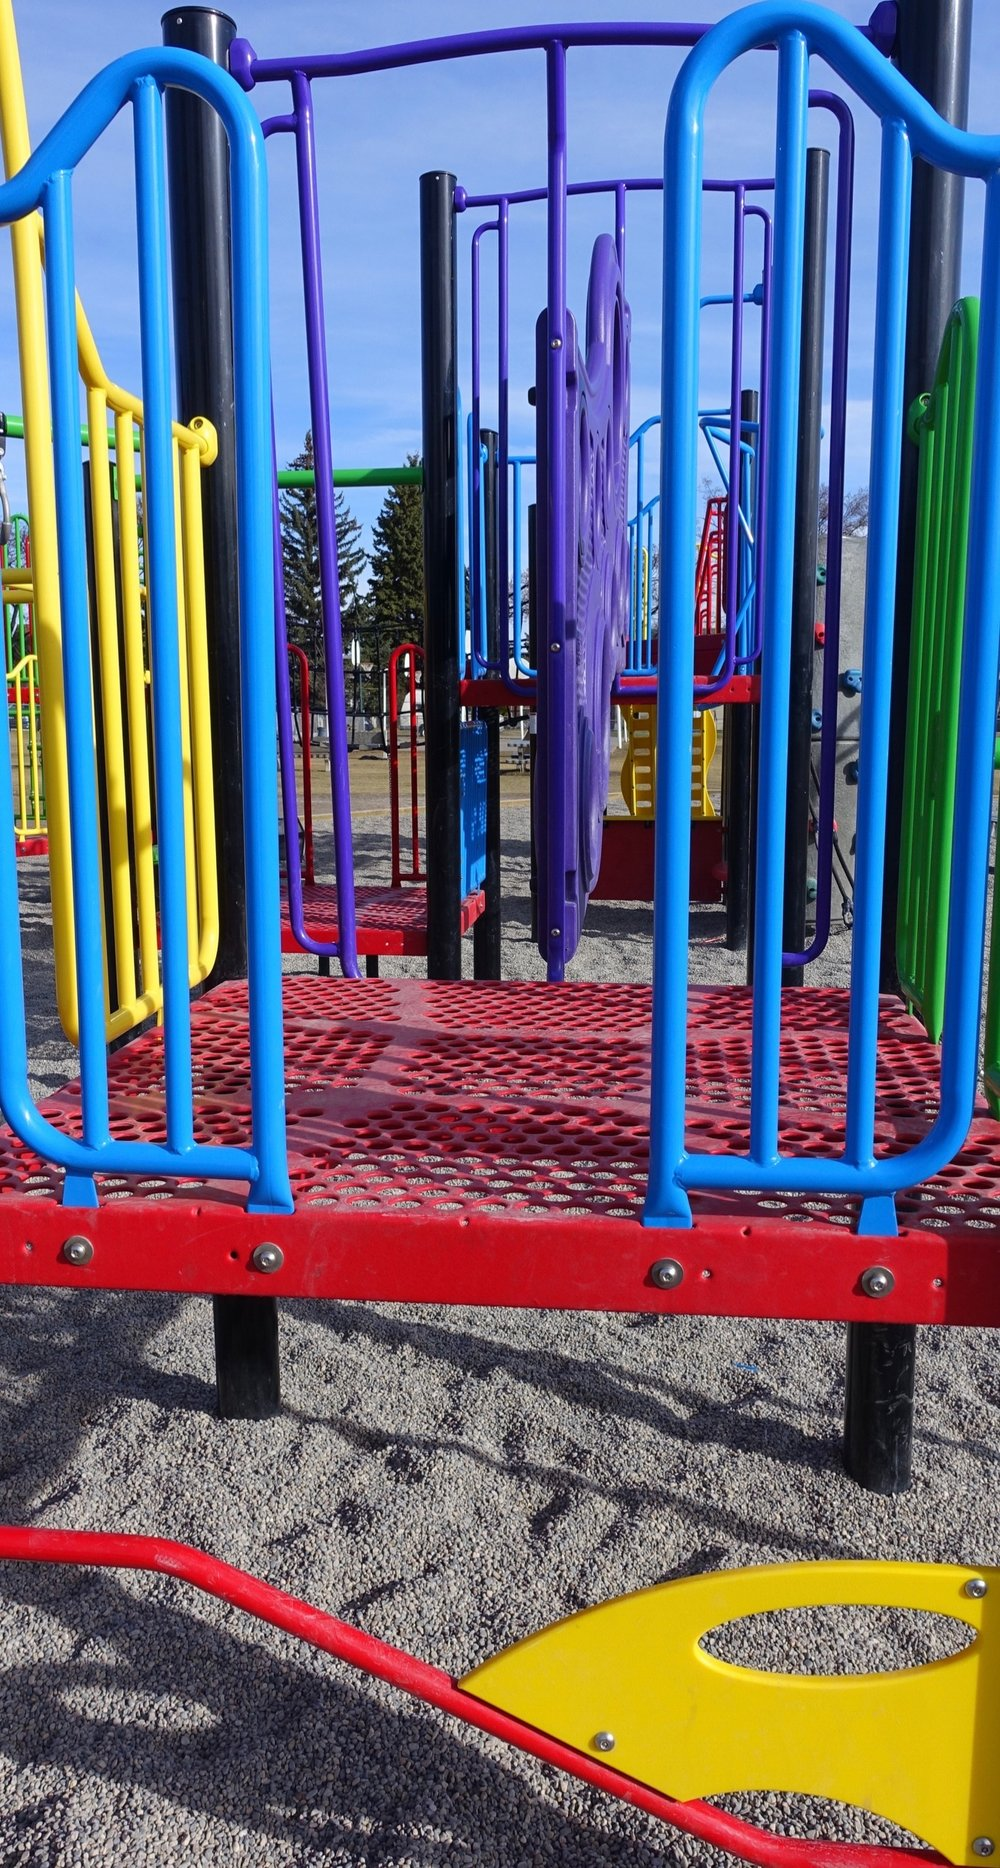 Many of the new playgrounds have artistic qualities to them if viewed from the right angle.